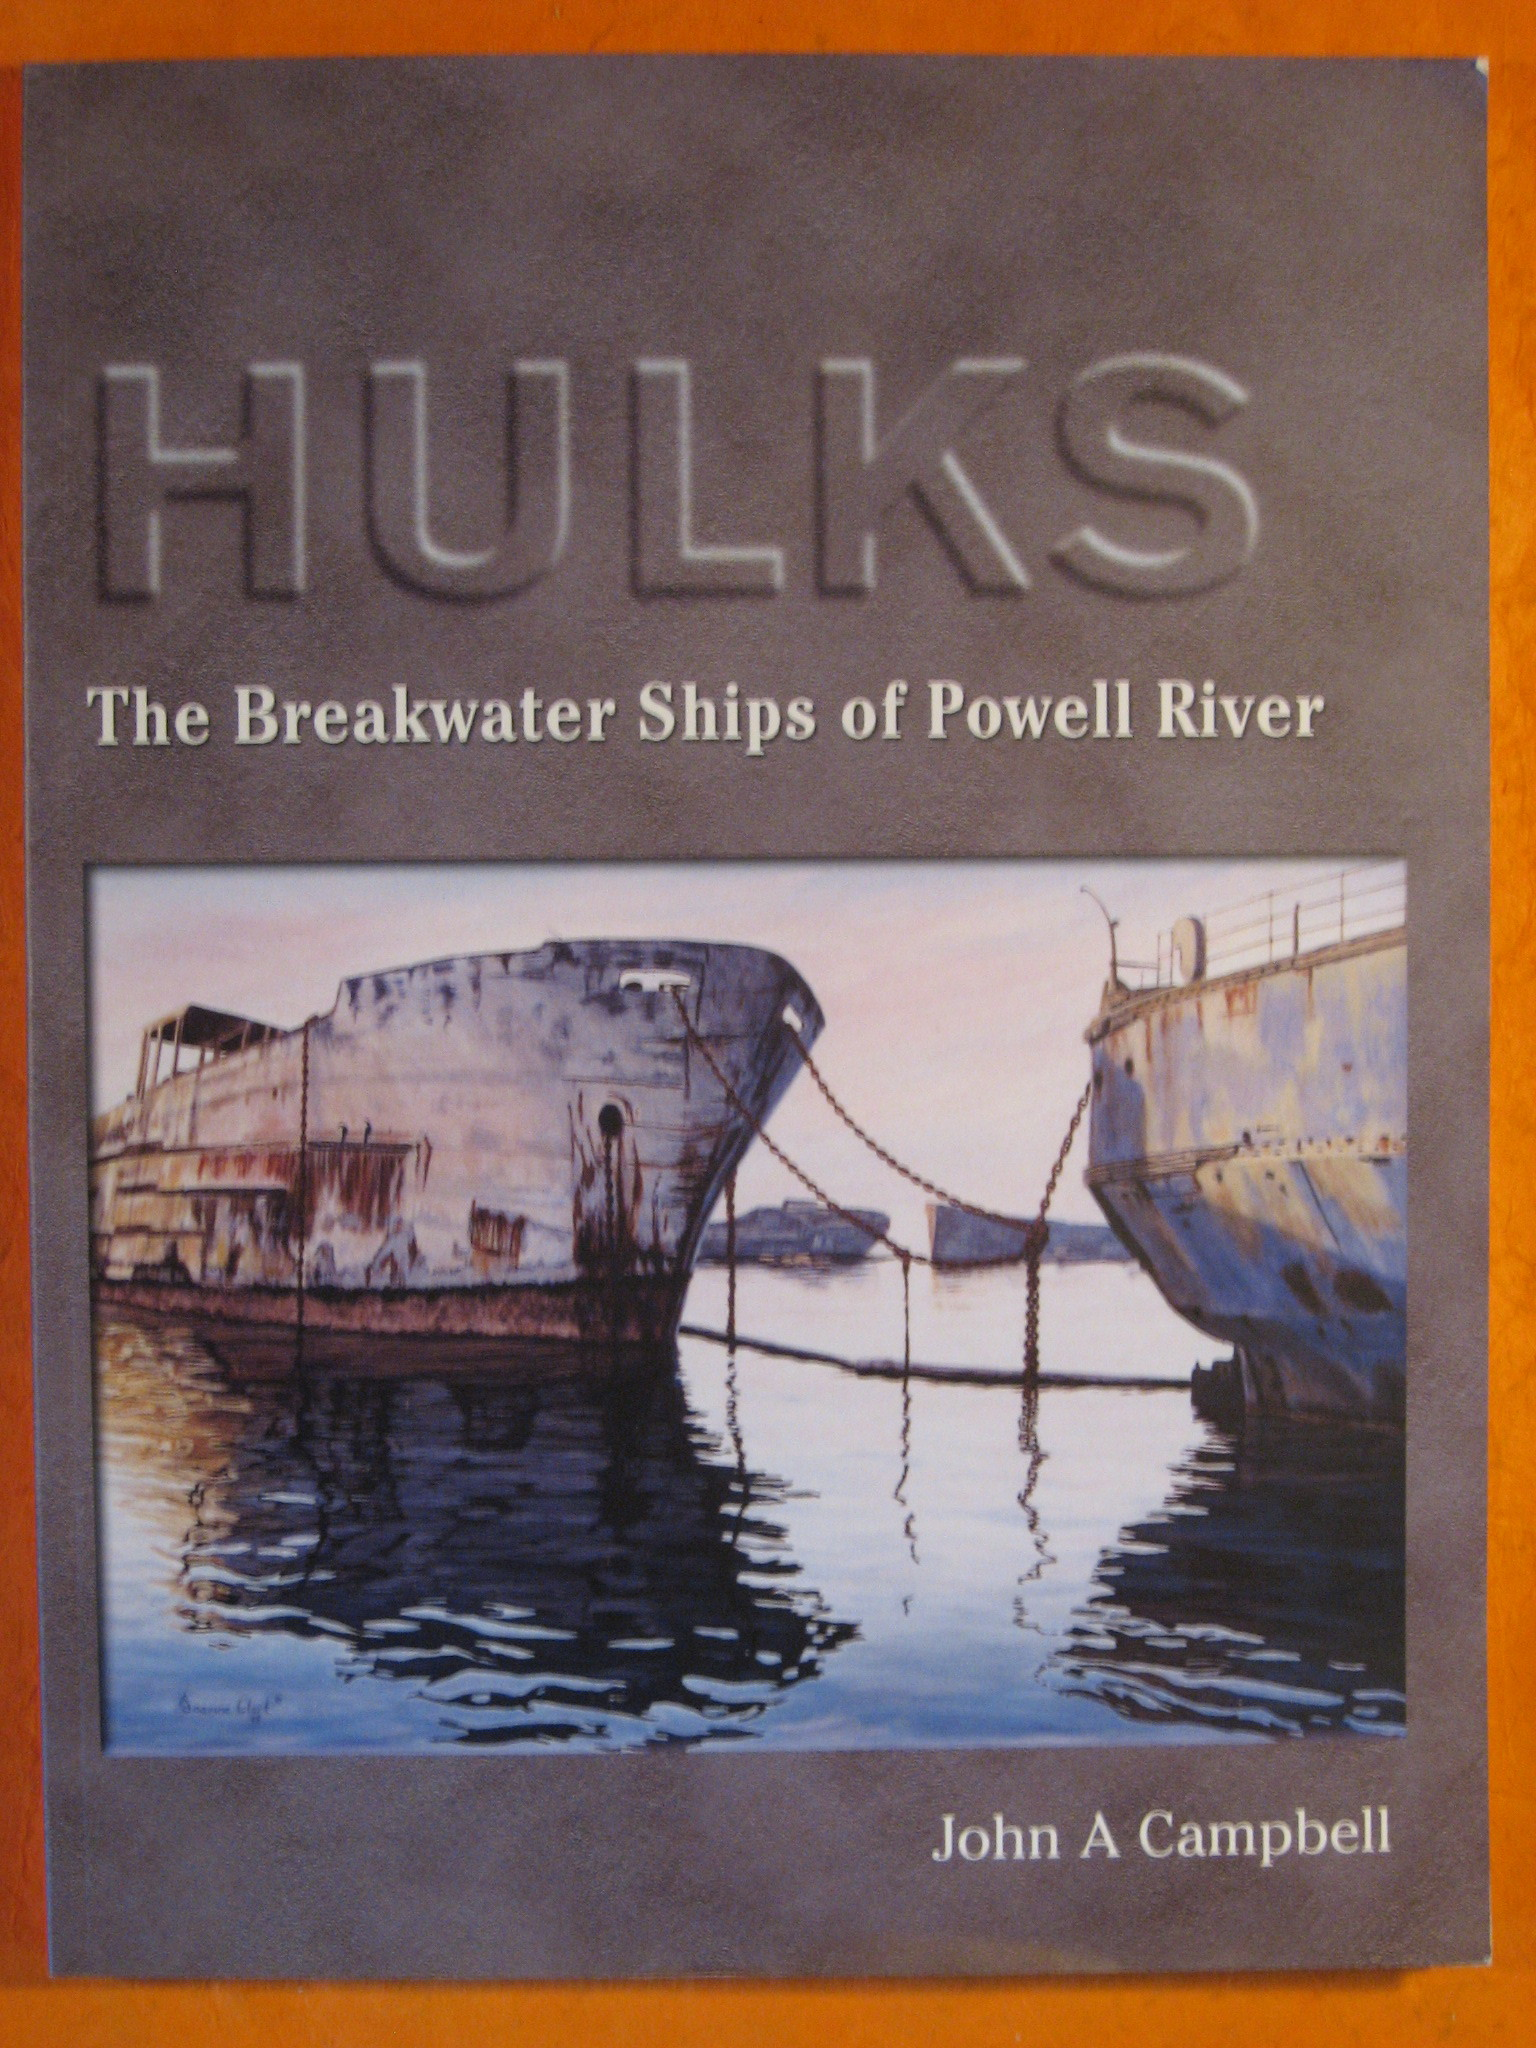 Hulks: The Breakwater Ships of Powell River, Campbell, John A.